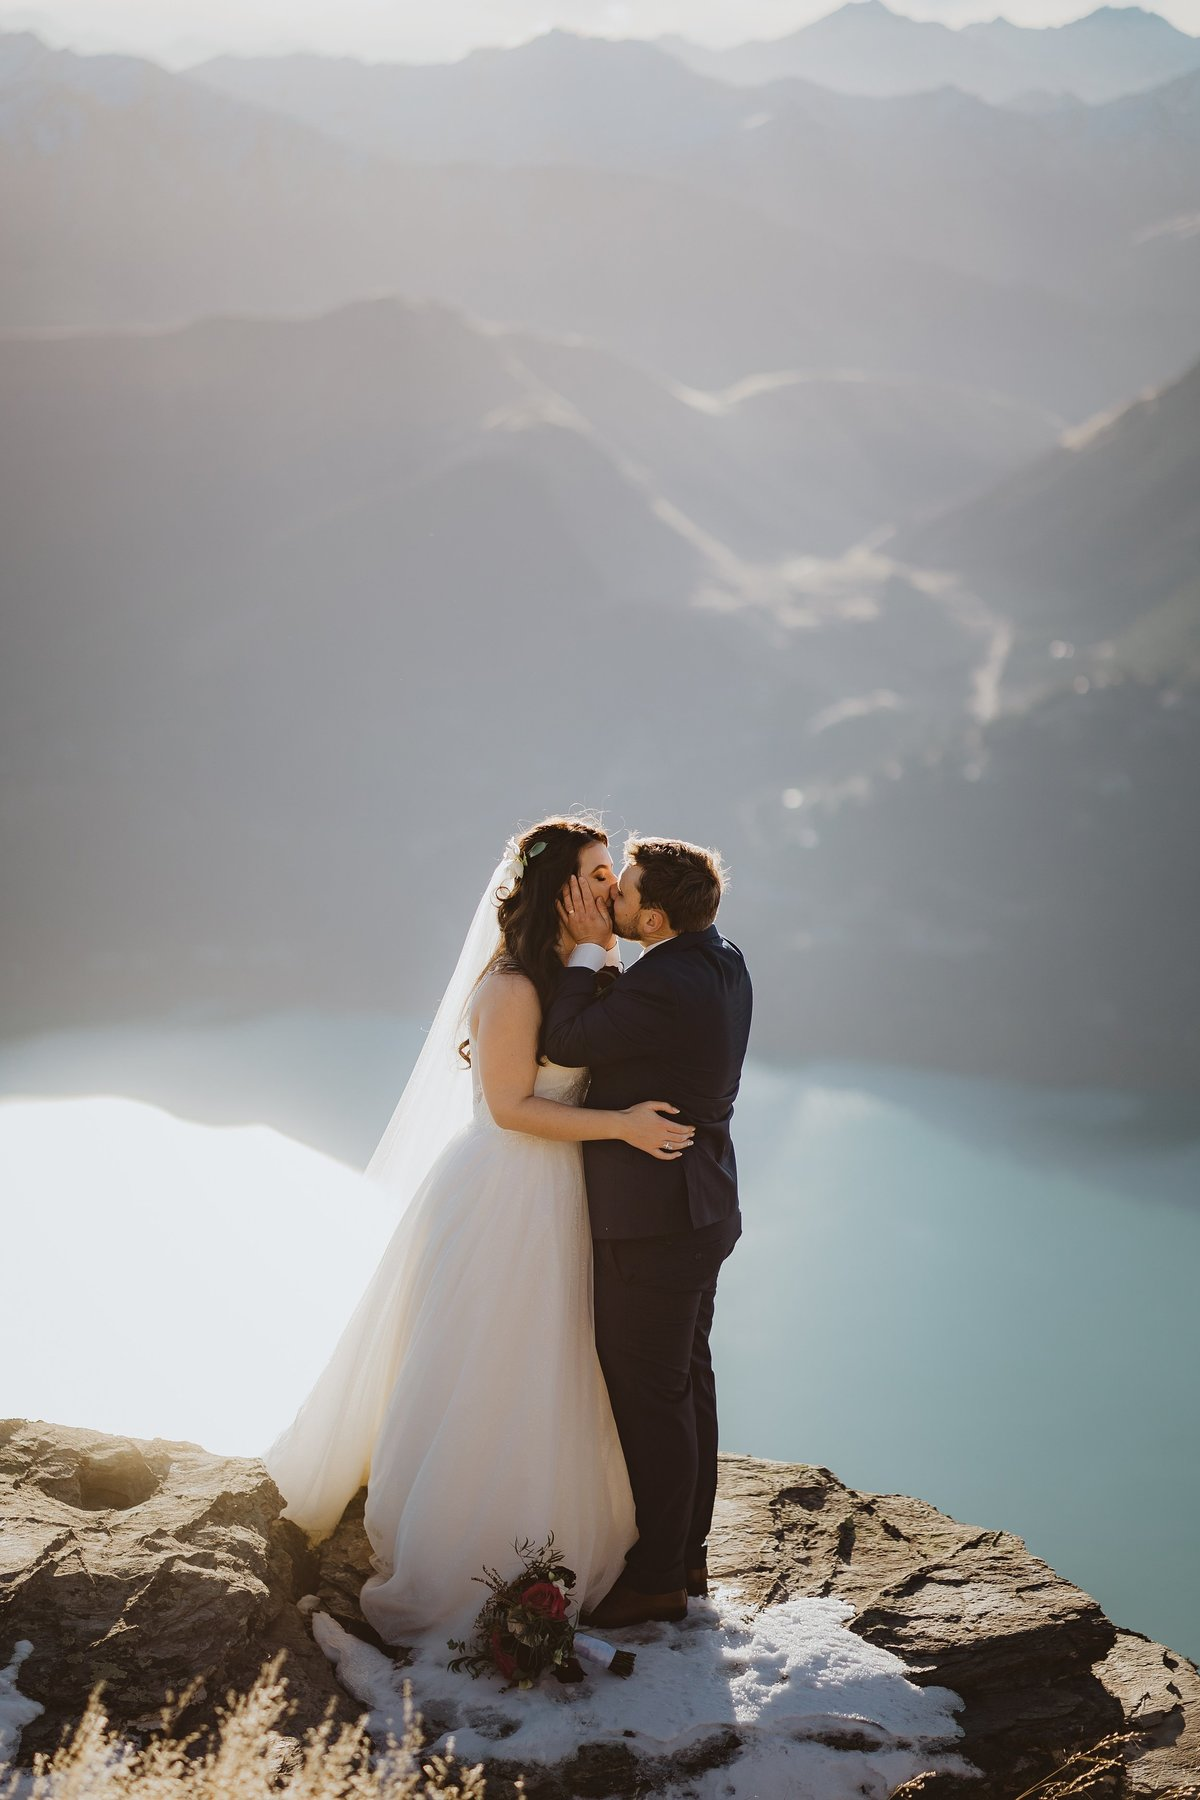 Groom grabbing his bride and kissing her on a cliff edge above a lake